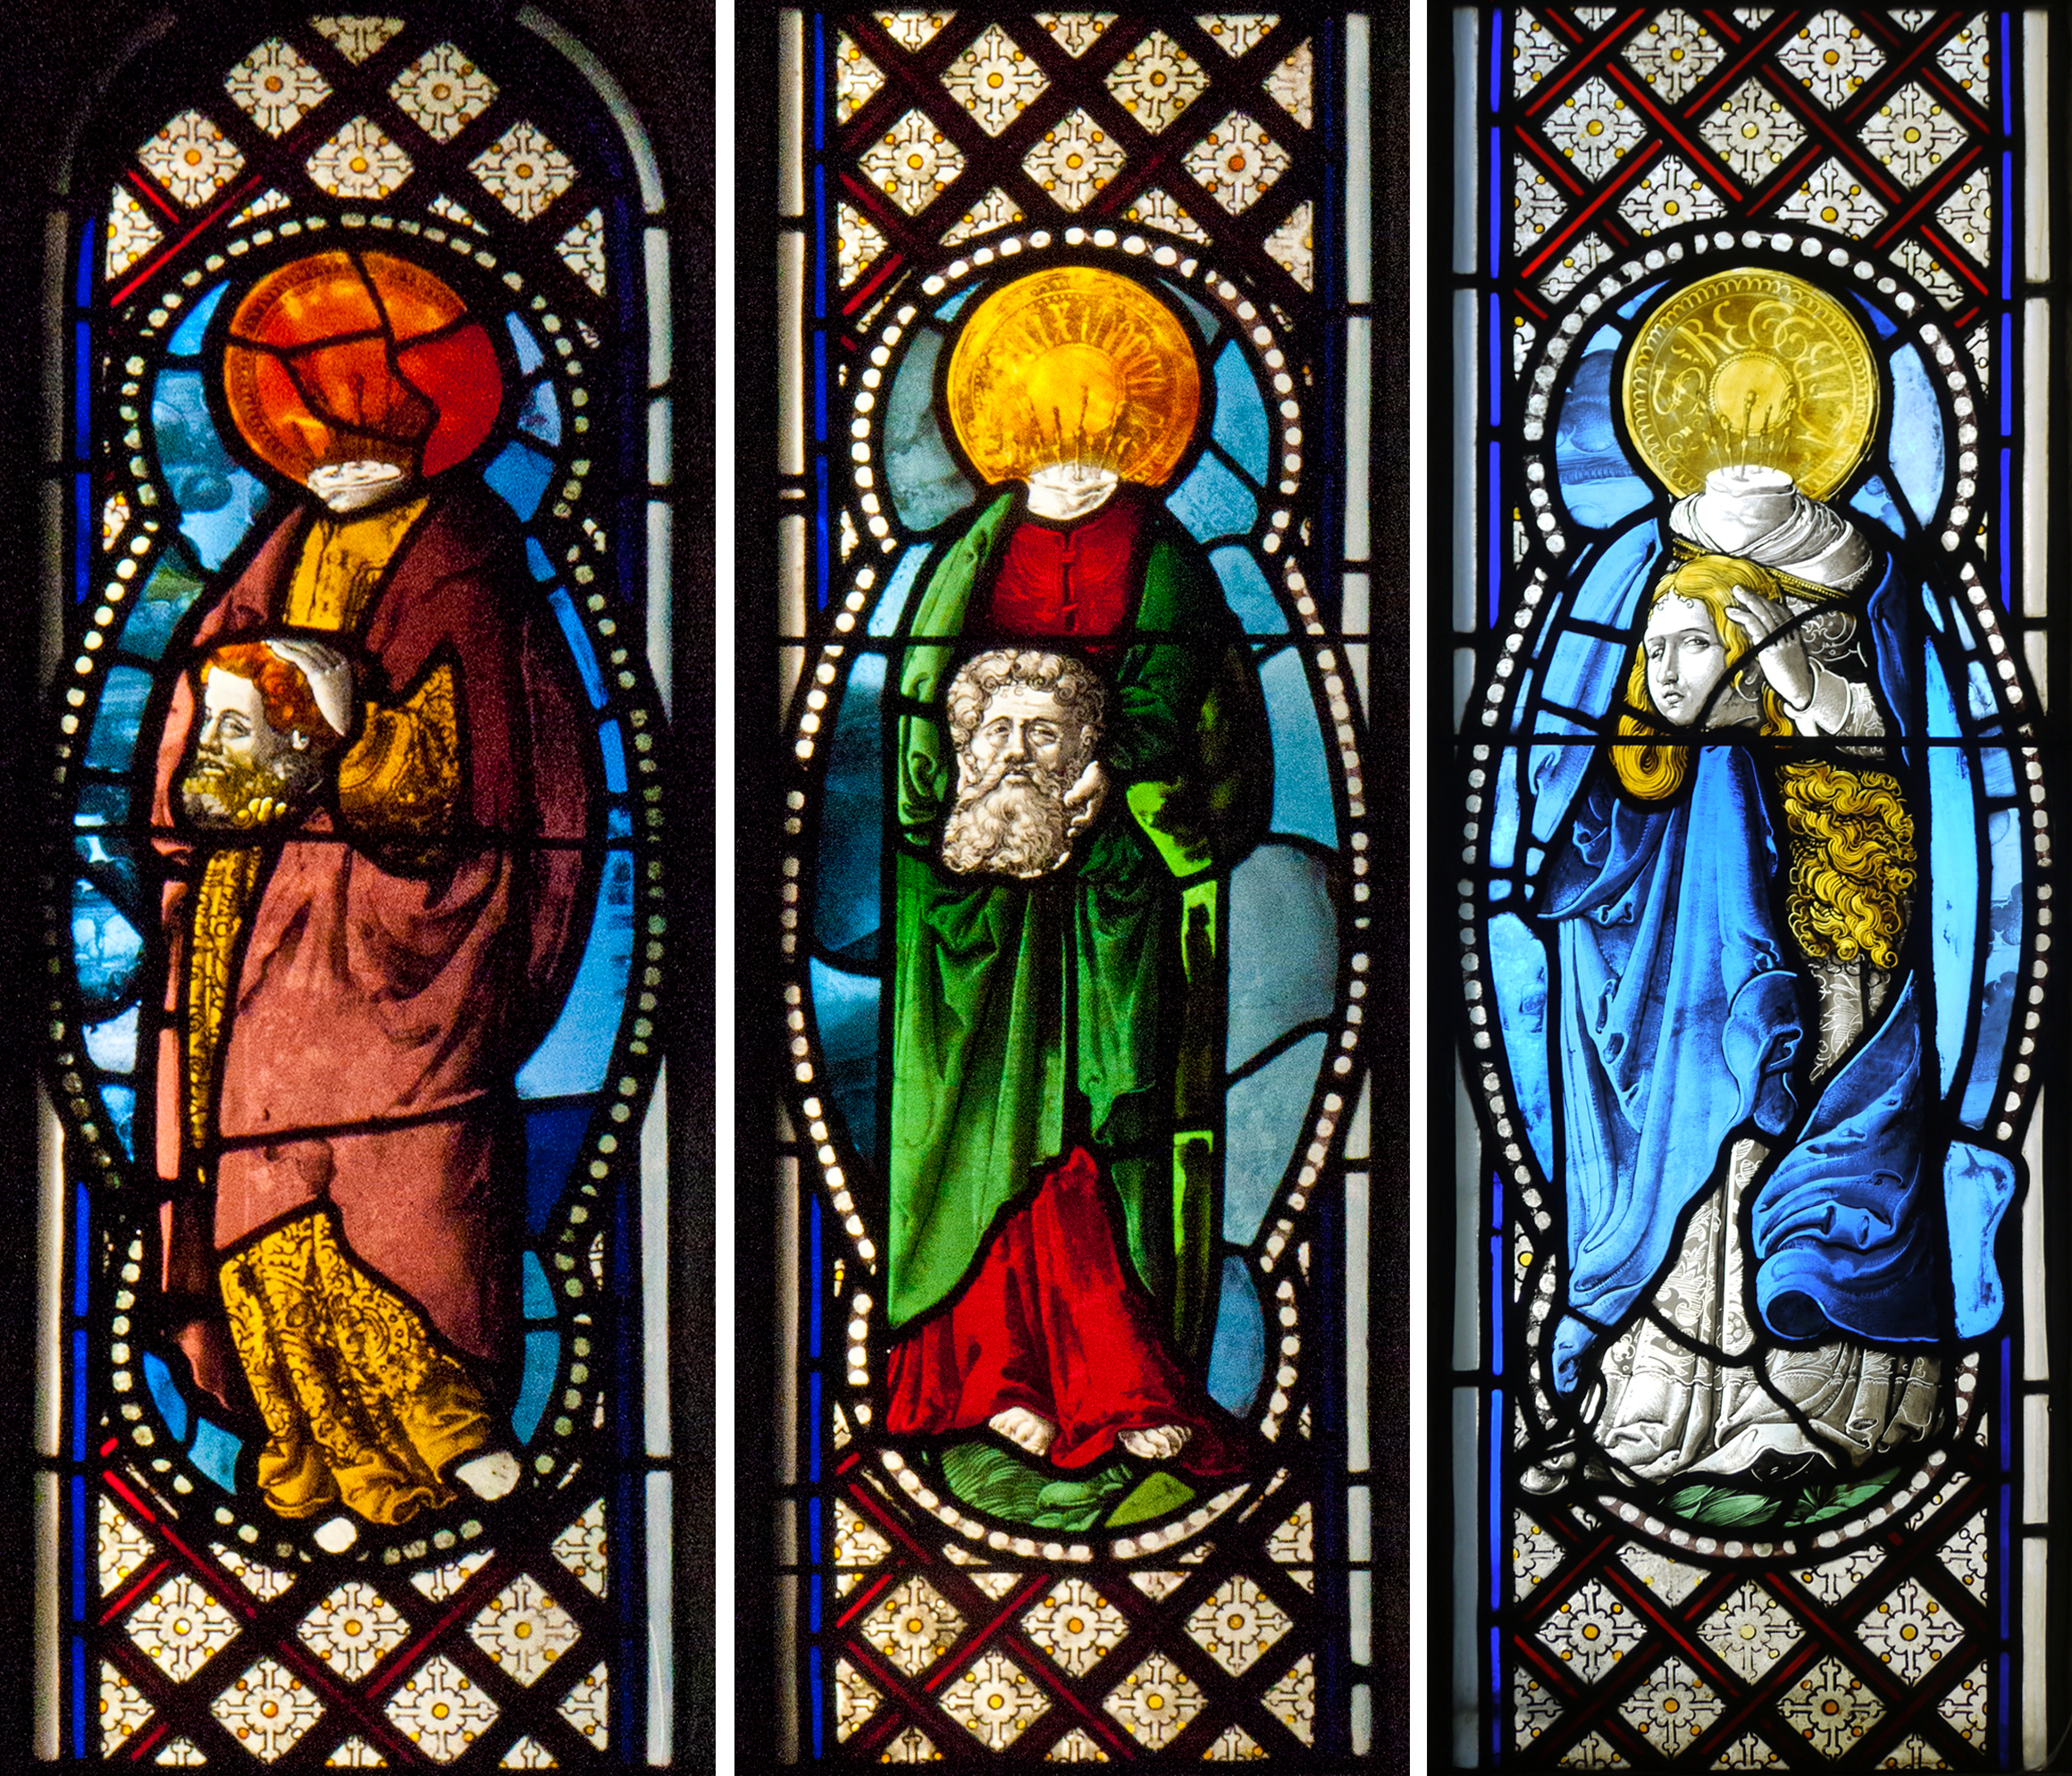 Martyred saints carrying their own heads - 16th century Swiss or German glass